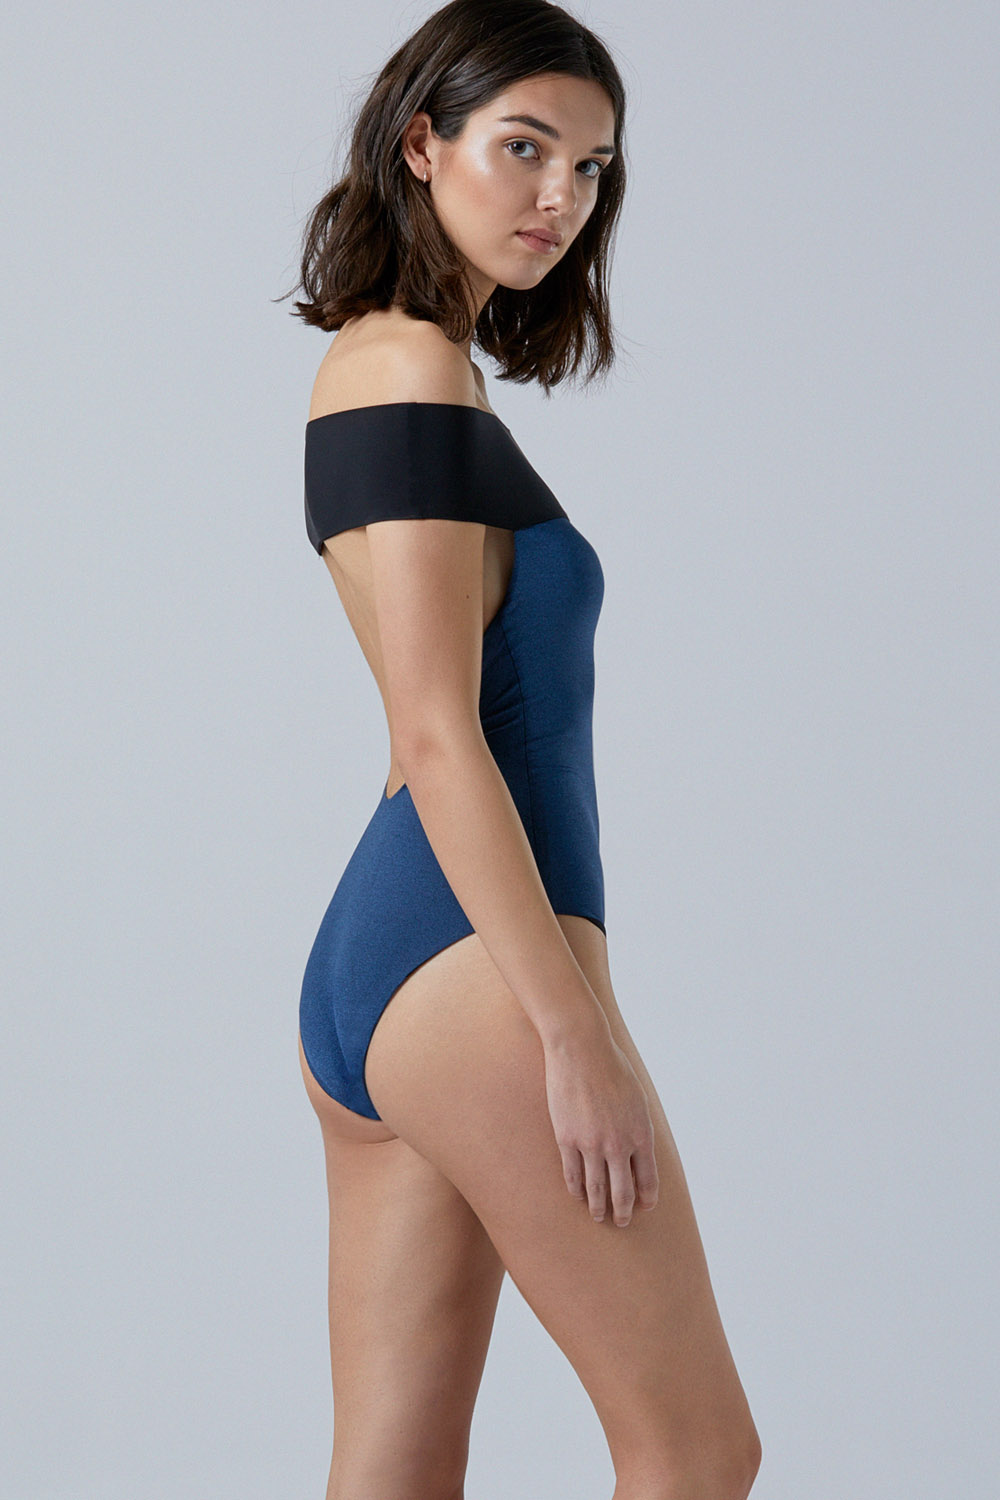 Tombo premium lurex onepiece, by NOW_THEN eco swimwear / bañador ecológico premium lurex